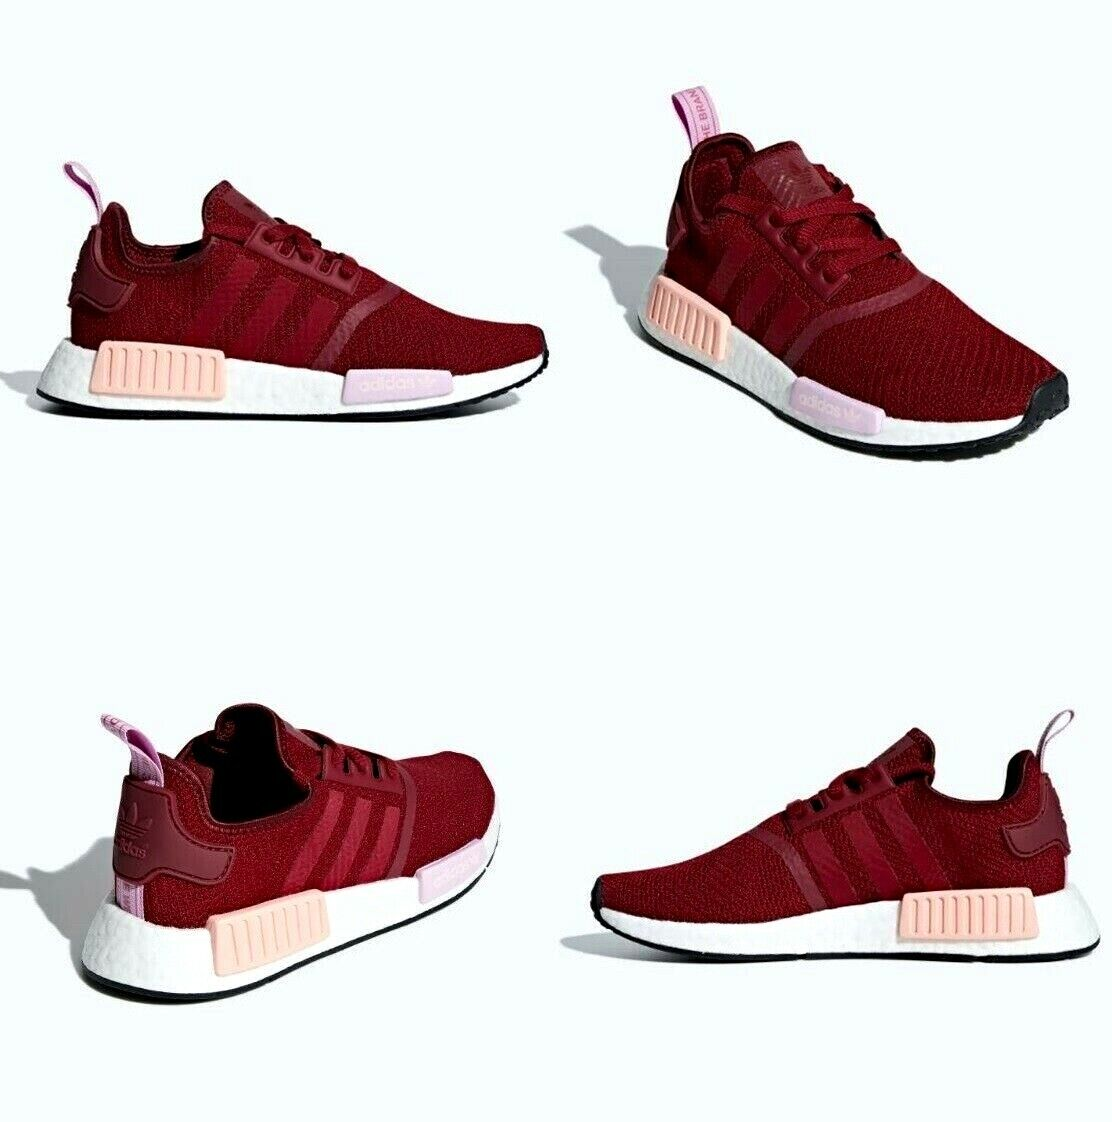 Adidas NMD R1 W Boost Burgundy   Clear orange Womens Size 6.5 US NIB B37646